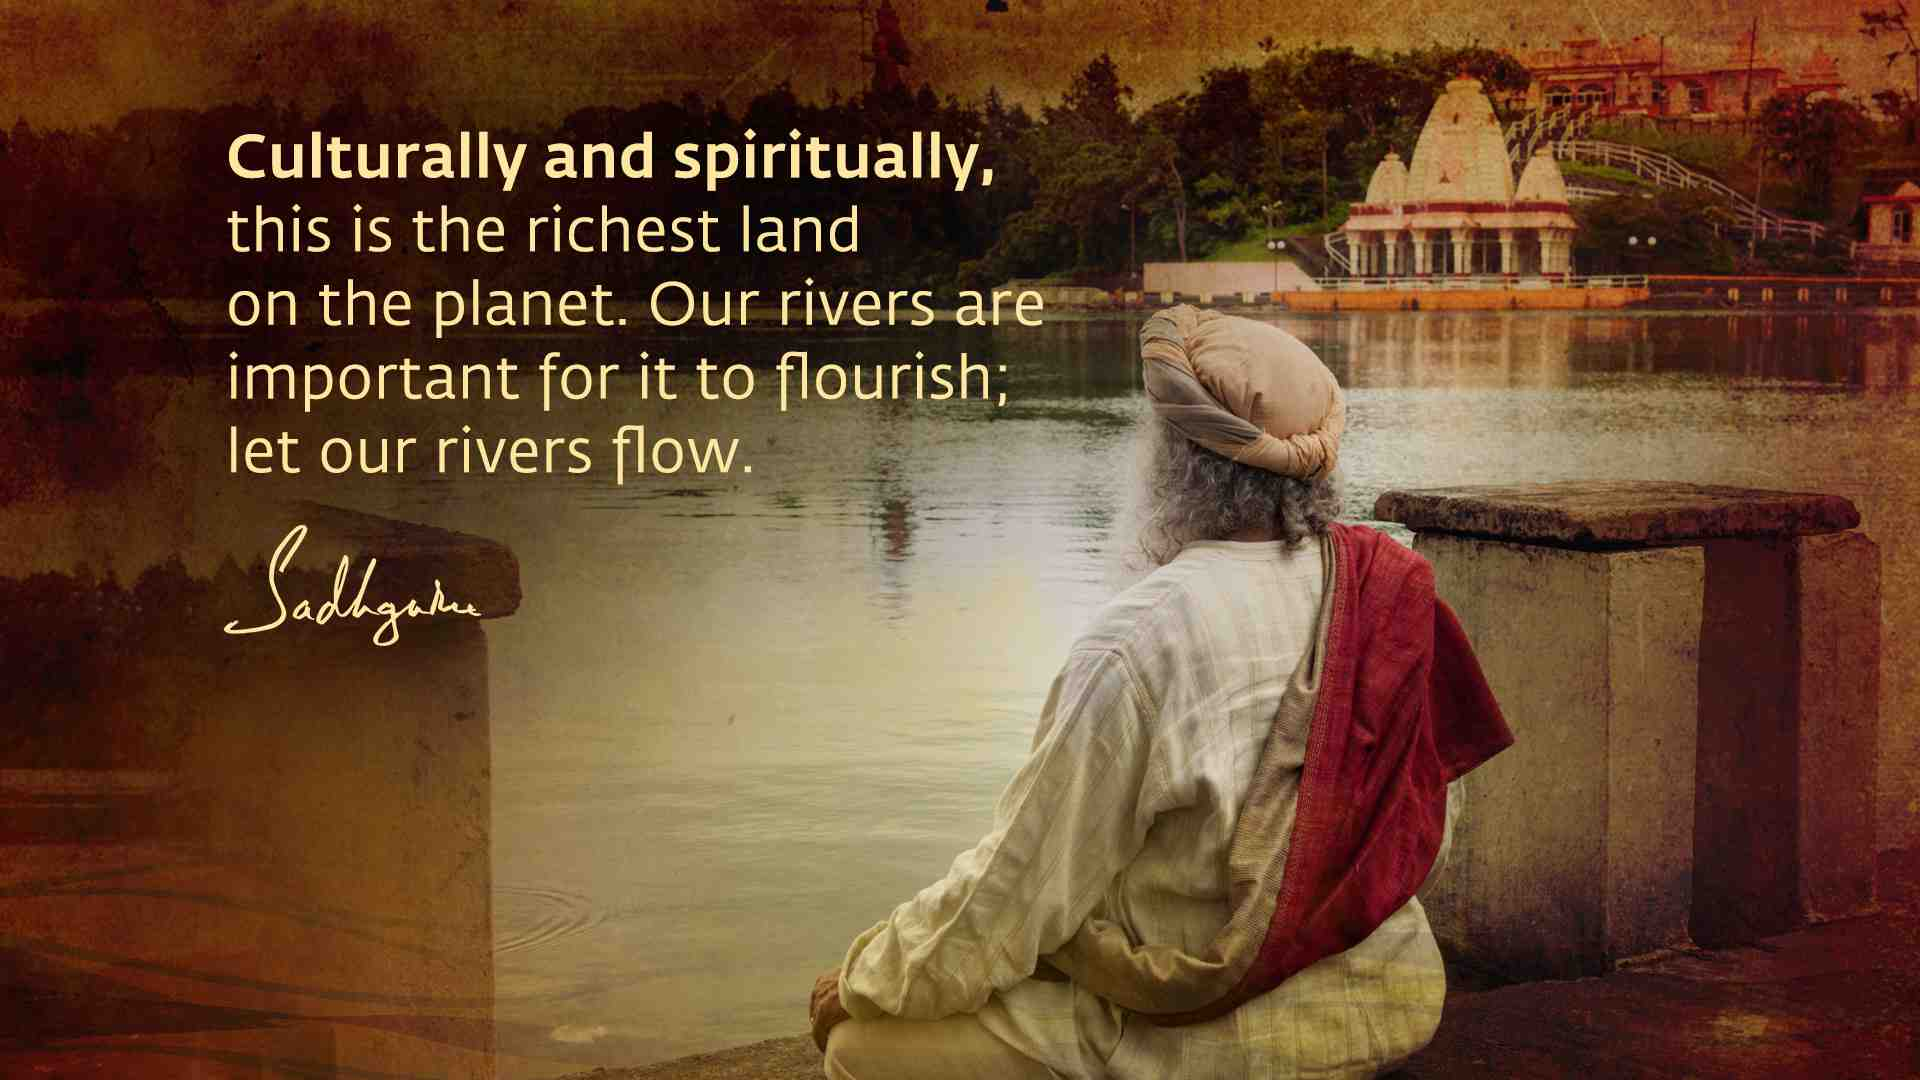 Quotes About Rivers | Sadhguru S Quotes On Rivers Isha Sadhguru